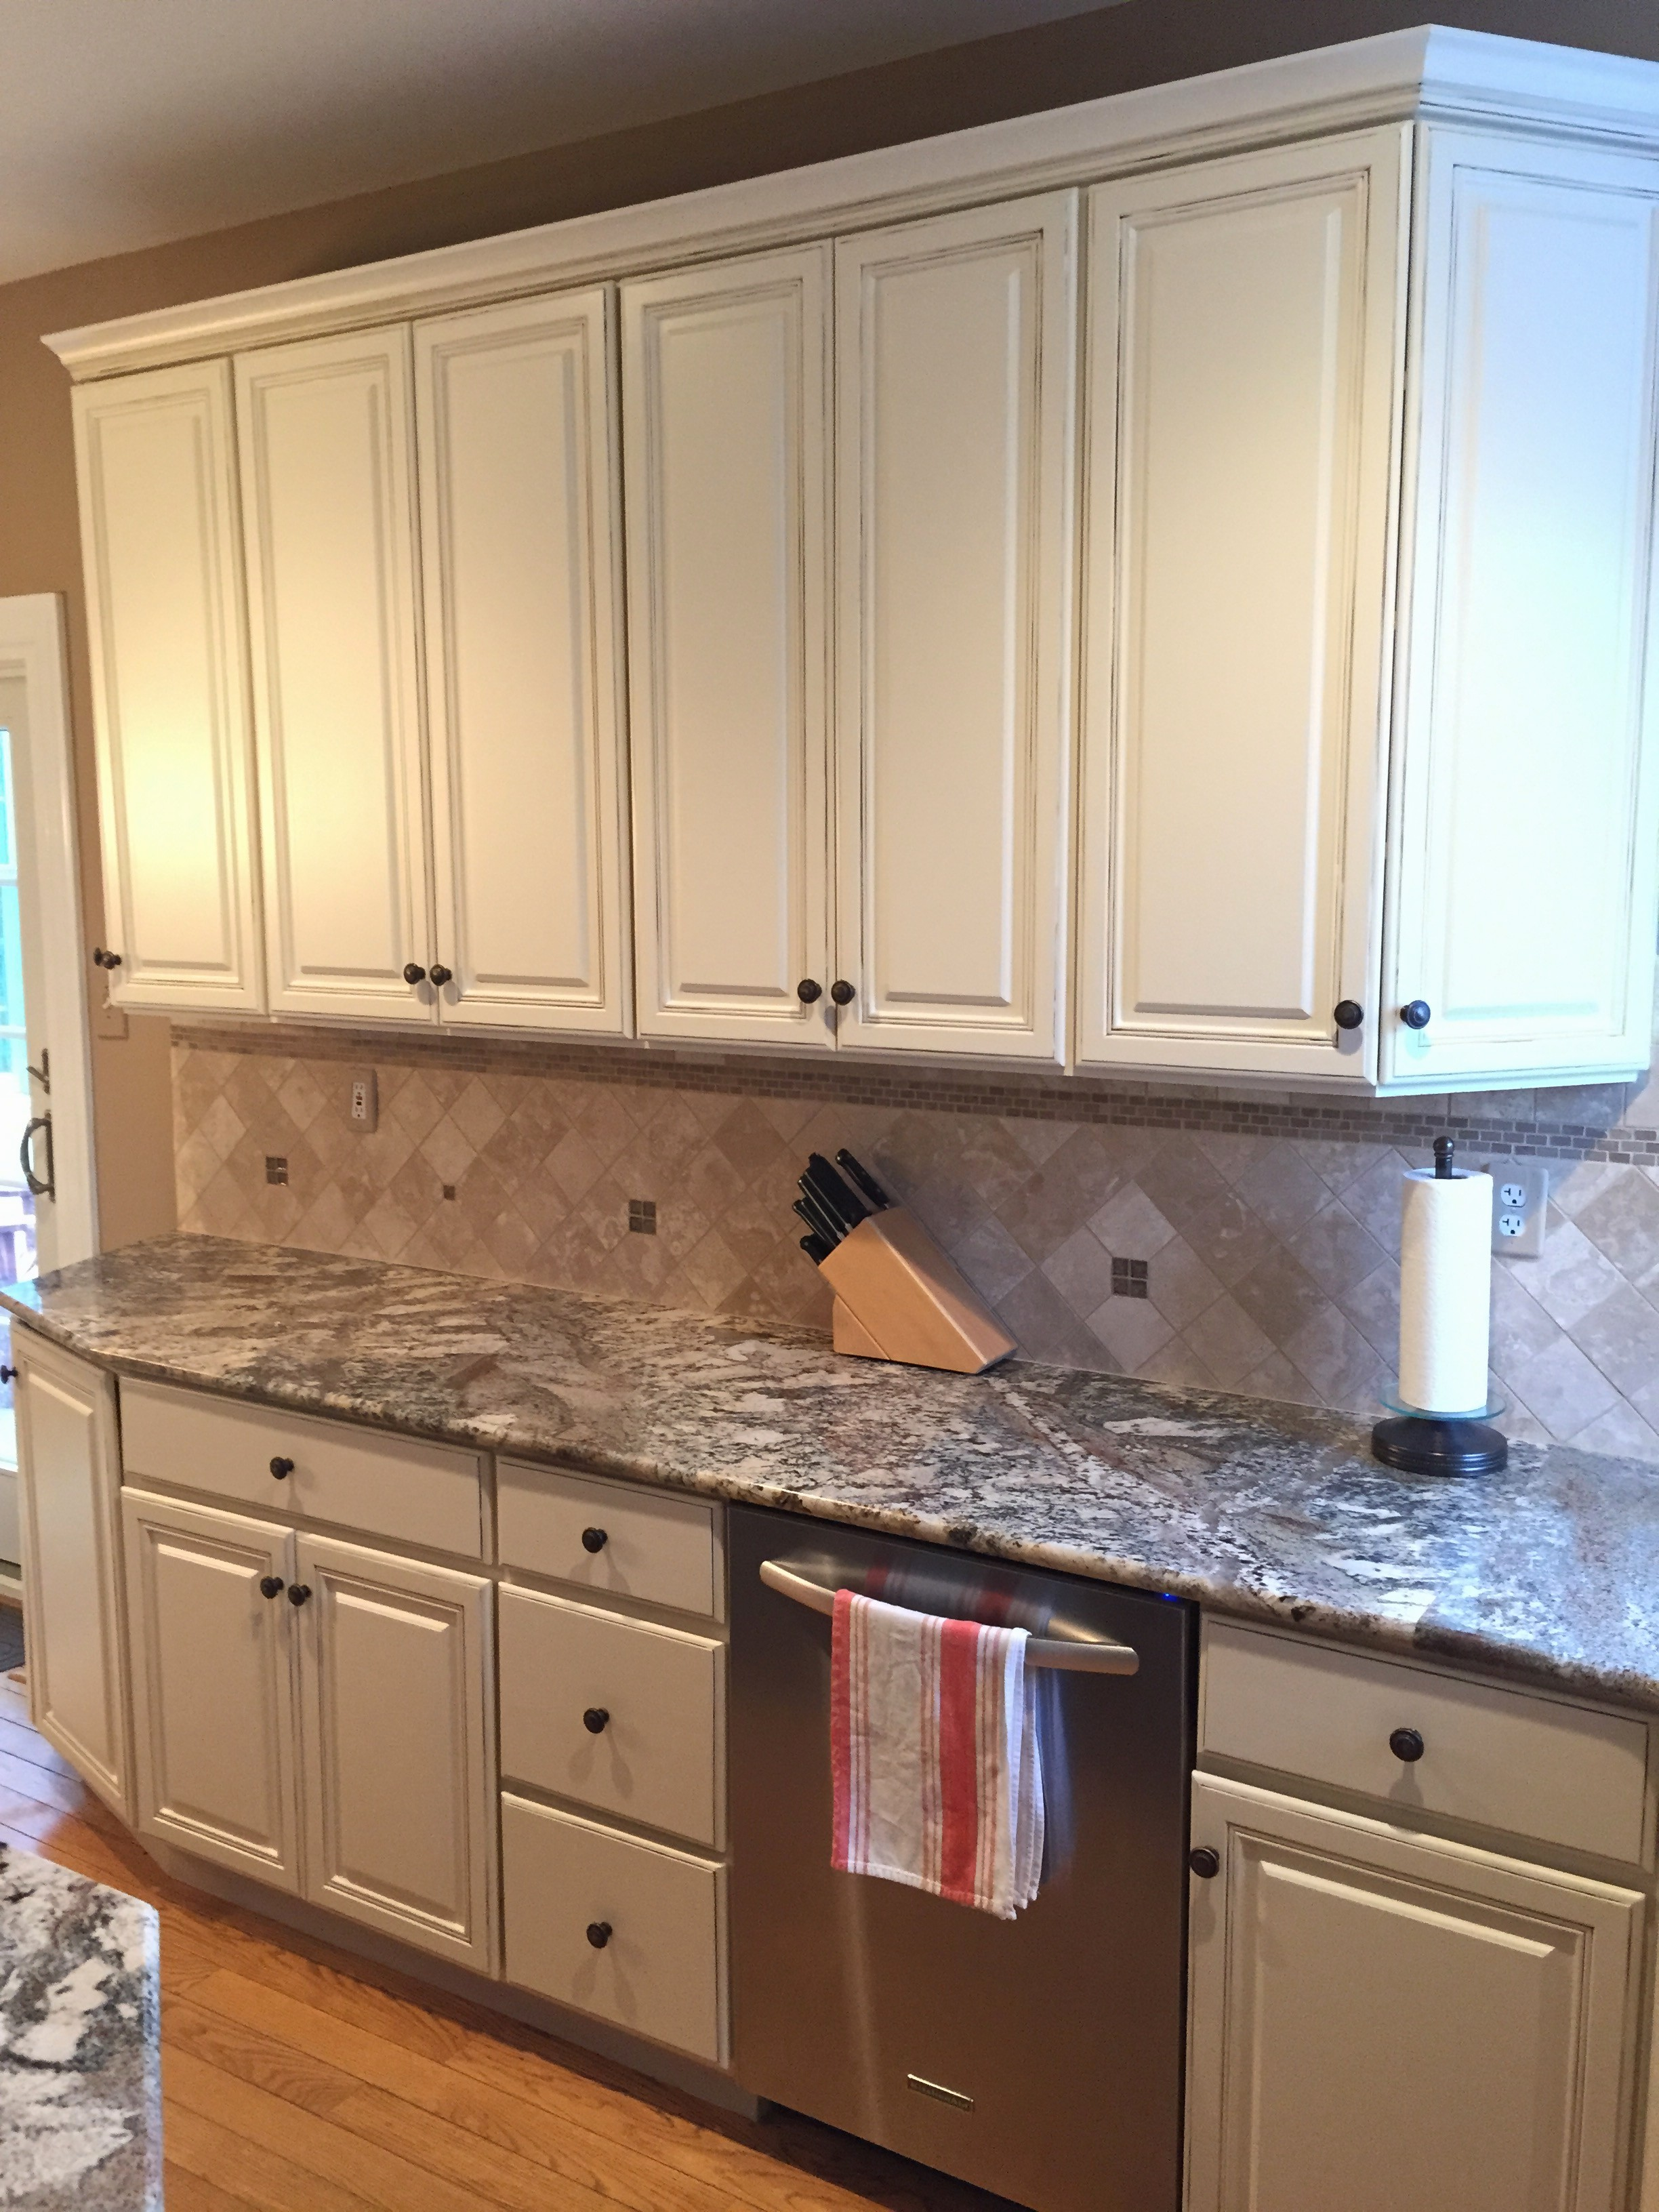 Kitchen Cabinet Painting in West Chester, PA